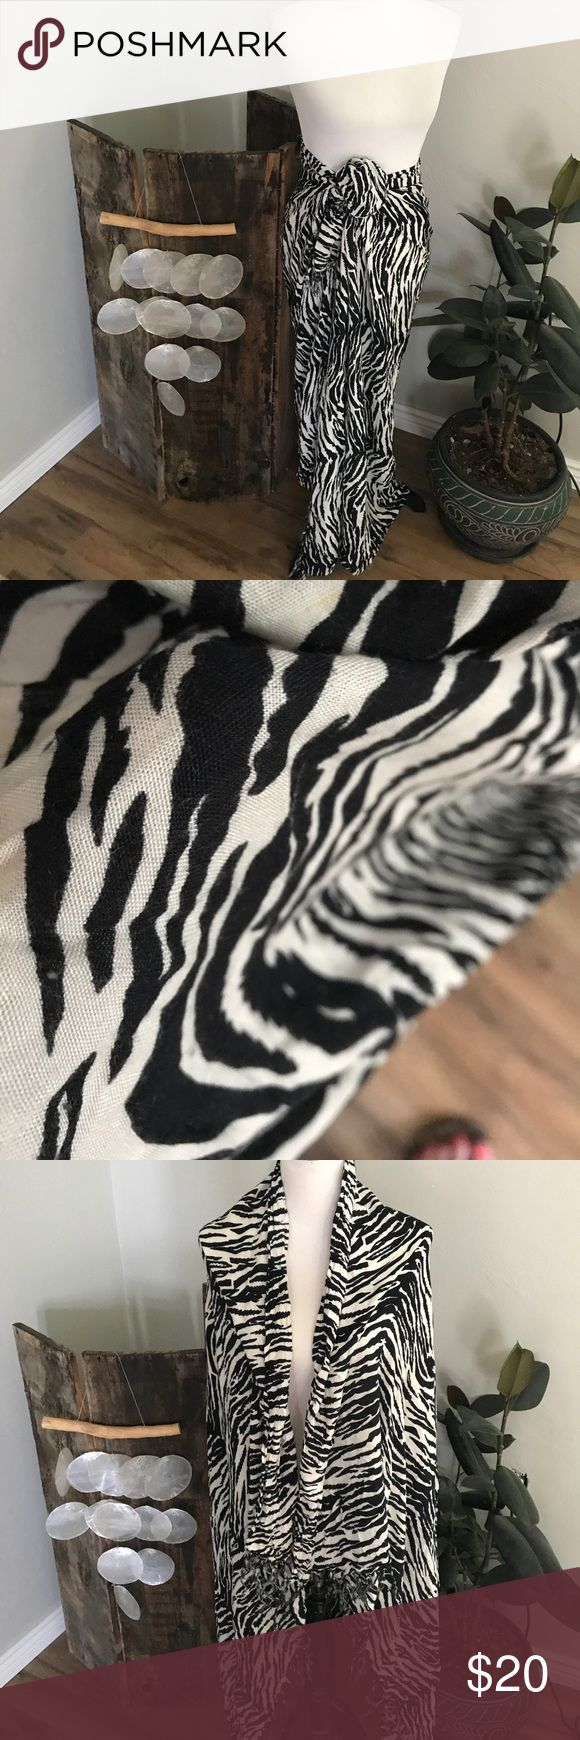 Zebra print swim cover/large scarf I got this on a trip to Mexico and have just not used it very much. As shown in the photos, it can be worn many different ways, both as a skirt, swimsuit cover, scarf. I am sure there are so much more ways to style than what I've shown. Has fringe on both ends. 59x43. I'm not sure of the material but it is very soft. There are a couple small runs or snags, but with how small they are and the zebra stripe you can hardly see them. Accessories Scarves & Wraps